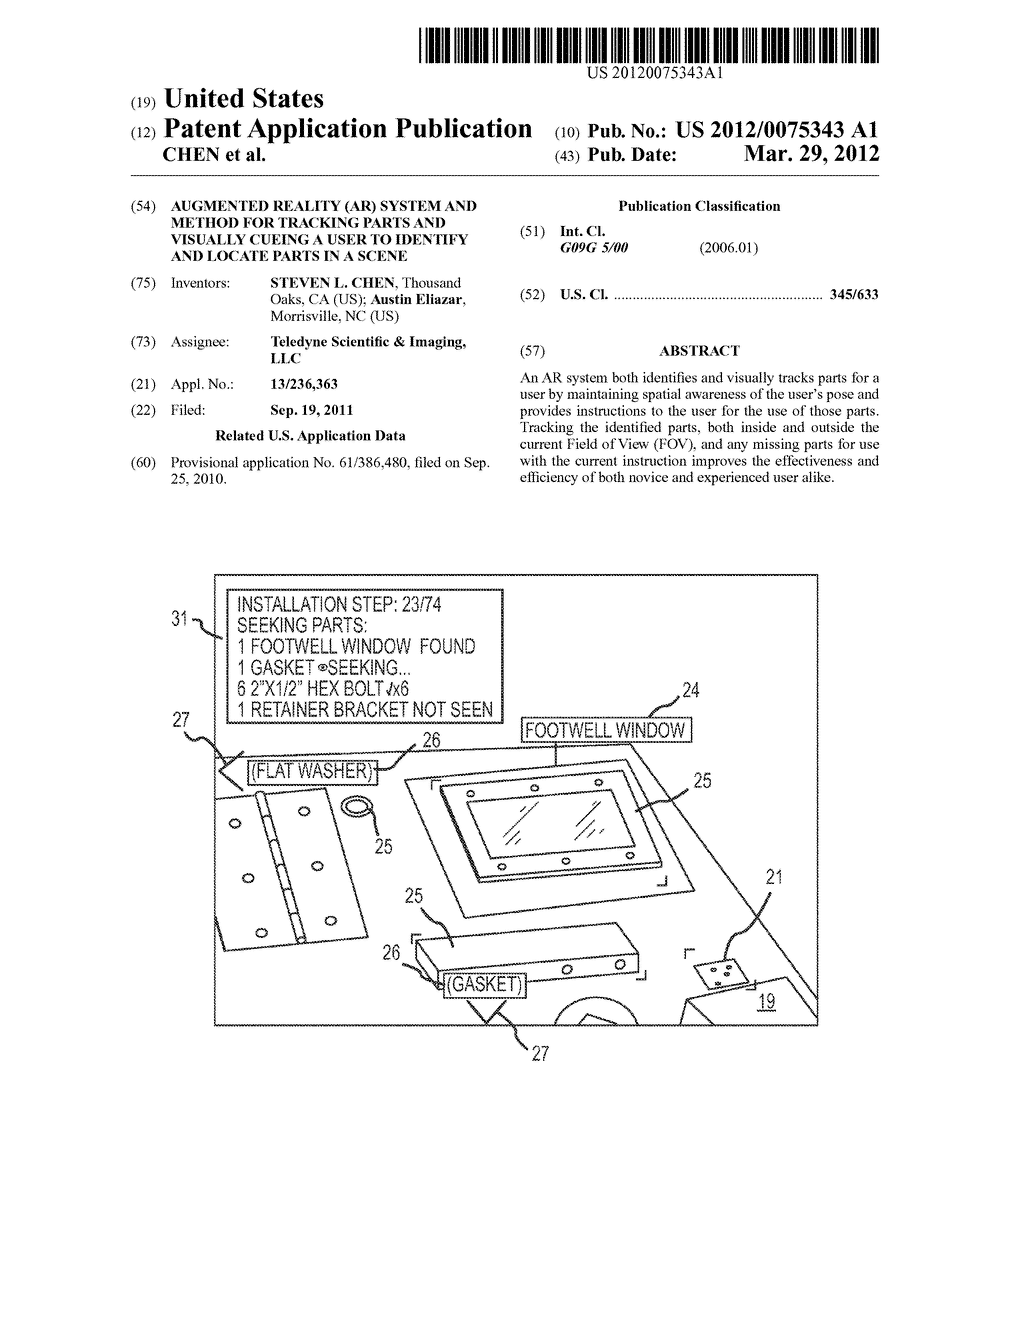 AUGMENTED REALITY (AR) SYSTEM AND METHOD FOR TRACKING PARTS AND VISUALLY     CUEING A USER TO IDENTIFY AND LOCATE PARTS IN A SCENE - diagram, schematic, and image 01